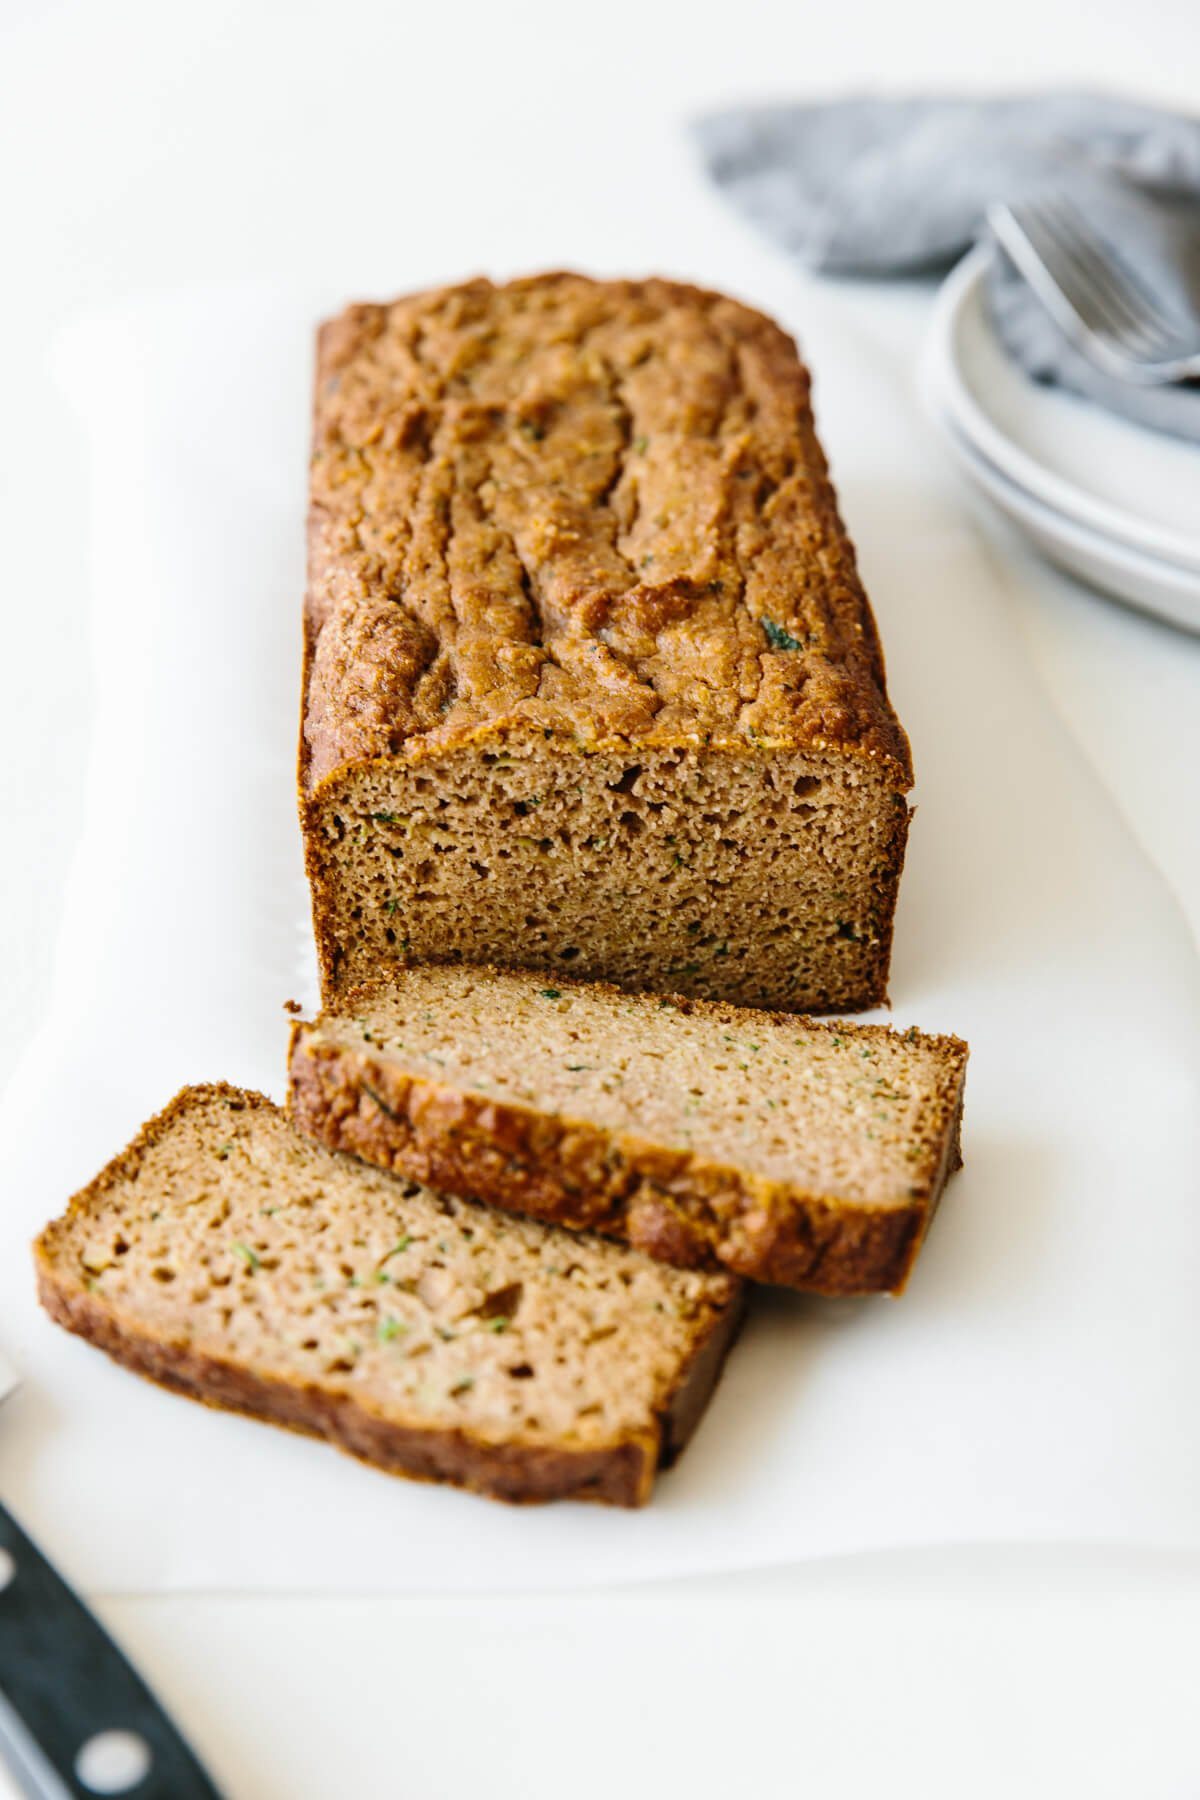 Paleo zucchini bread on a table with two slices from the loaf.